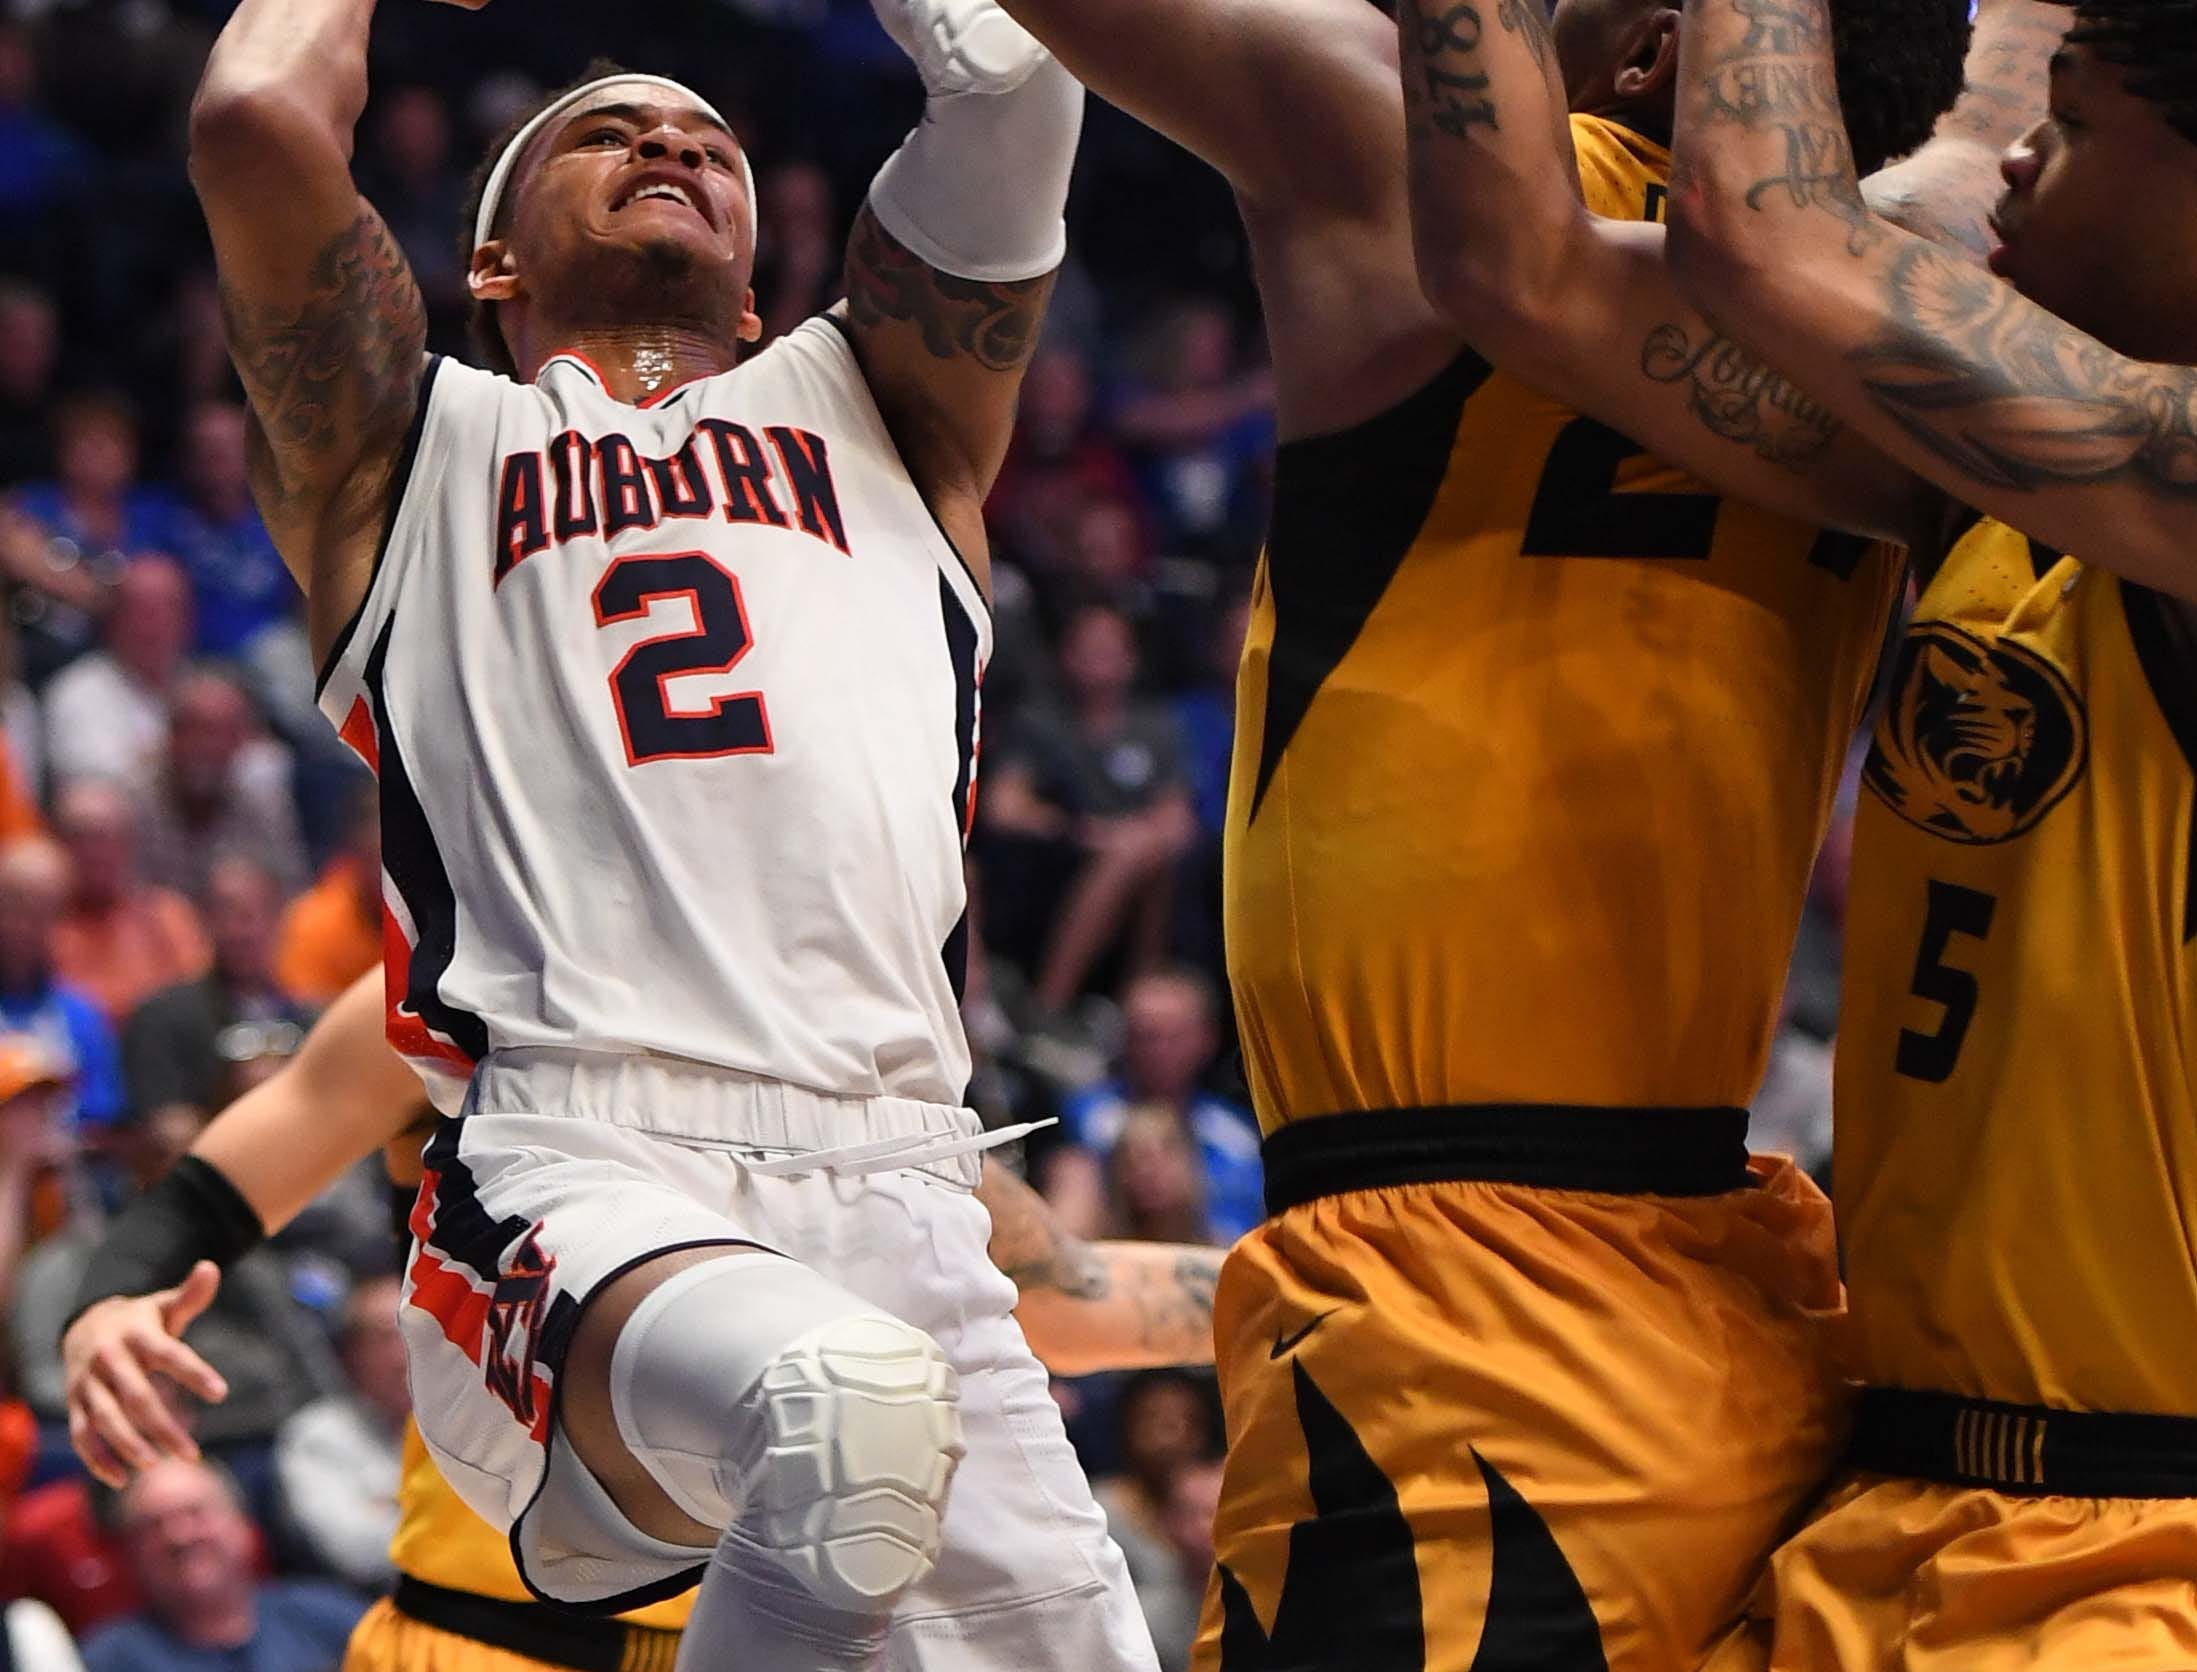 Mar 14, 2019; Nashville, TN, USA; Auburn Tigers guard Bryce Brown (2) shoots over Missouri Tigers forward Kevin Puryear (24) during the first half of the SEC conference tournament at Bridgestone Arena. Mandatory Credit: Christopher Hanewinckel-USA TODAY Sports